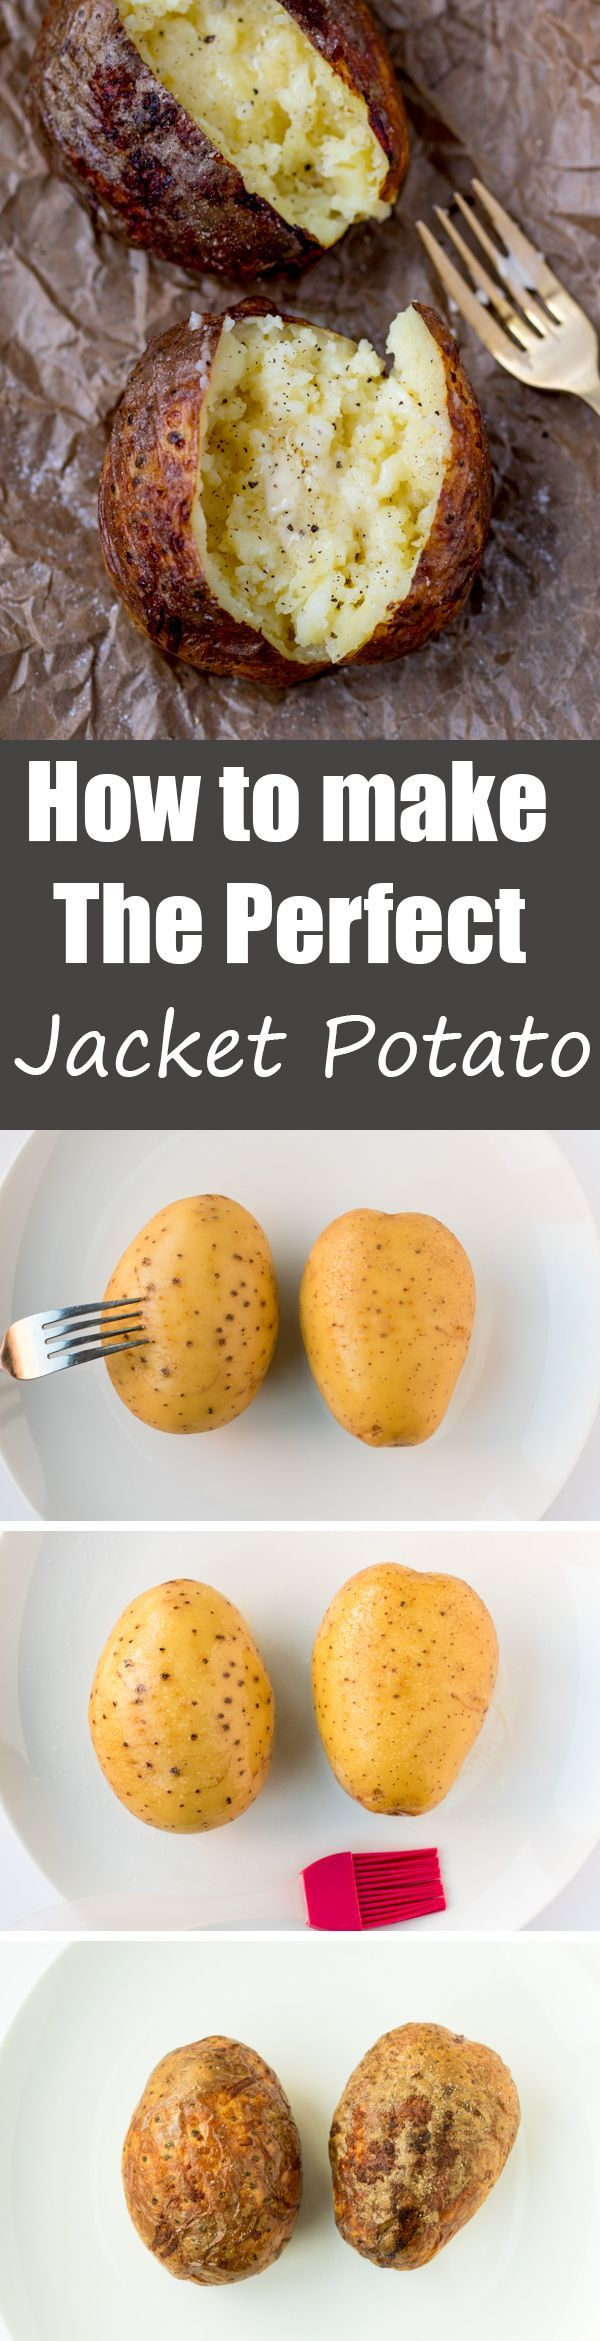 HOW TO MAKE a BAKED POTATO - crunchy, crisp skin with a light and fluffy interior - add plenty of butter for the perfect jacket potato!